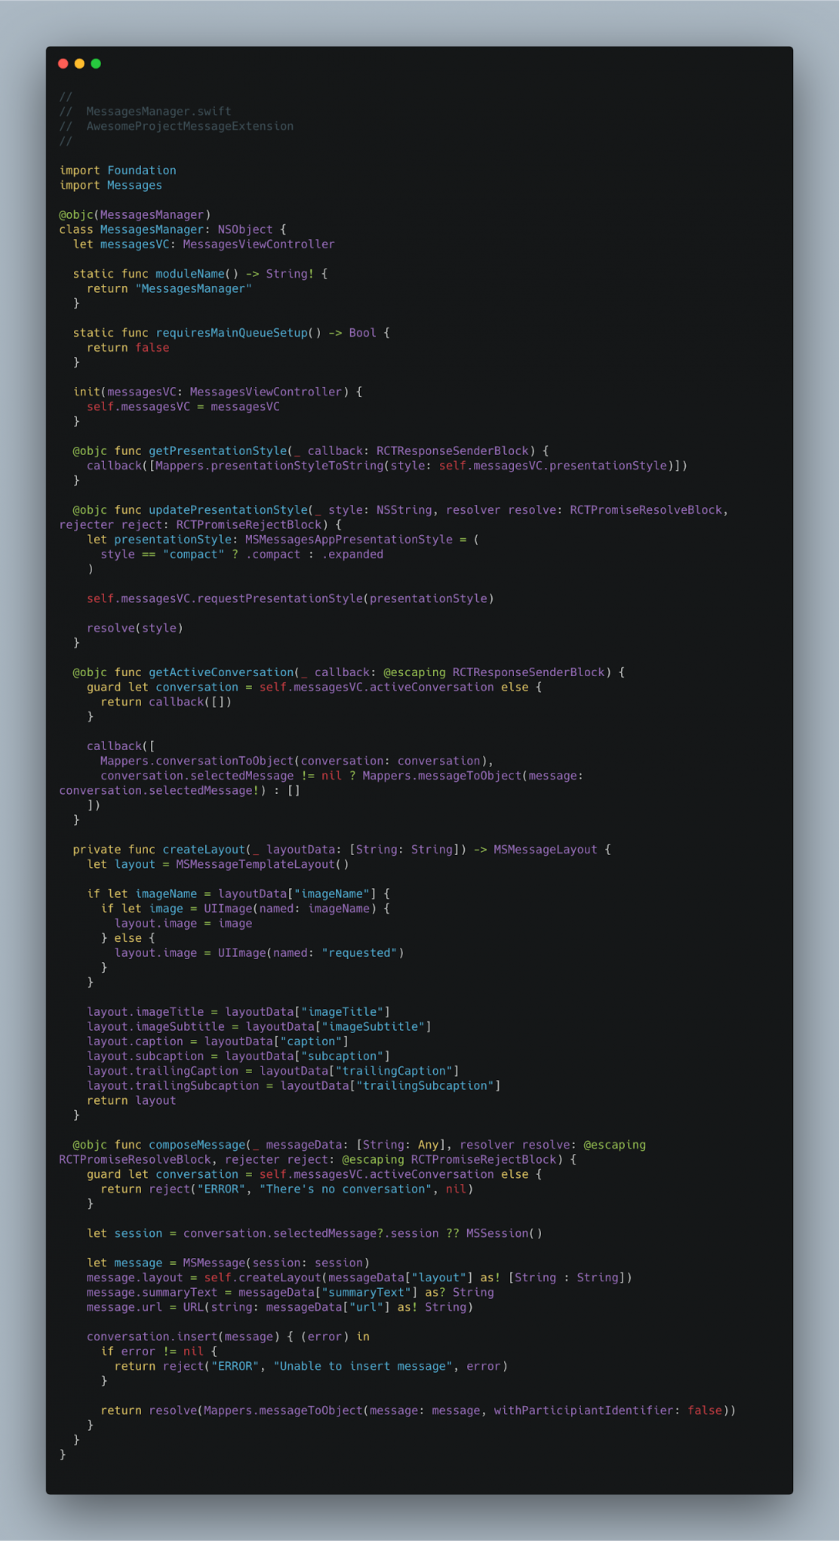 Initial structure of MessagesManager.swift